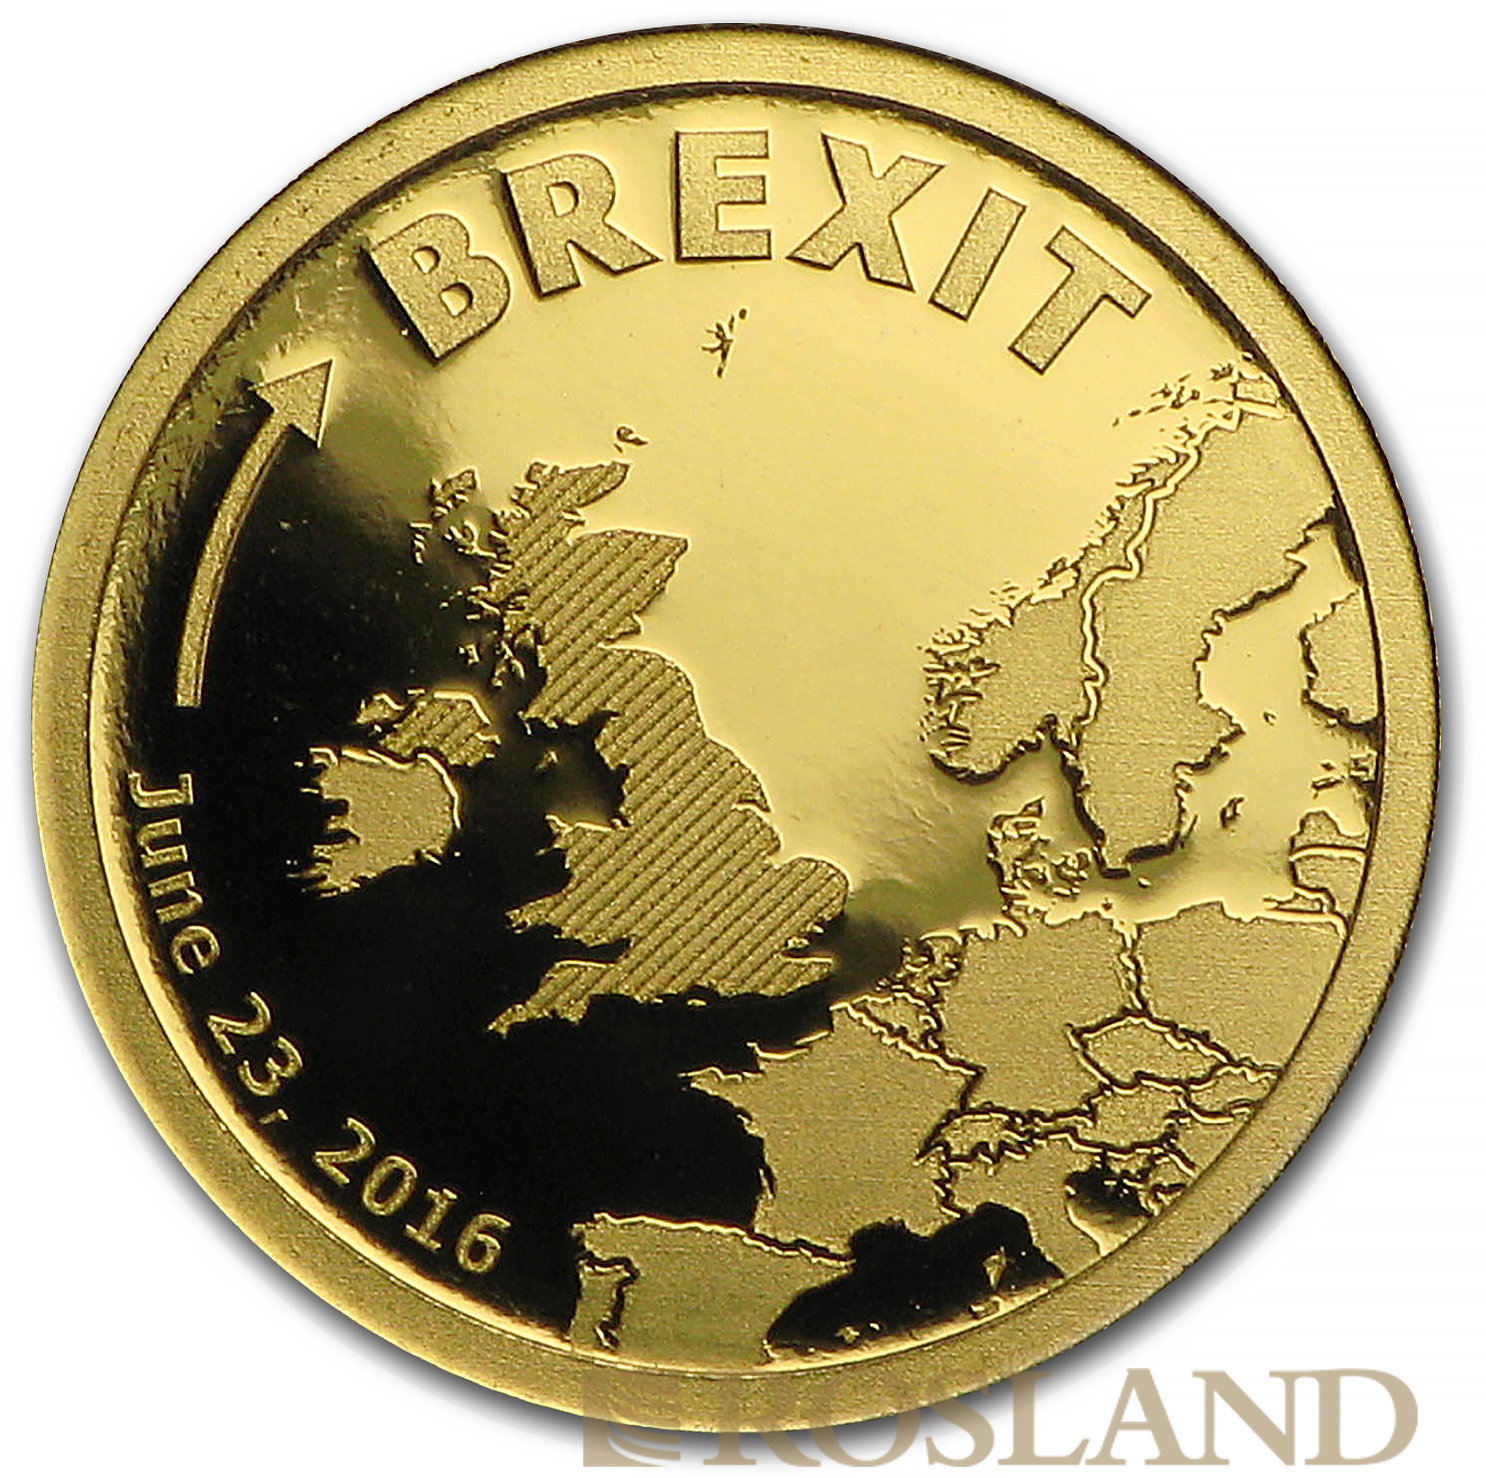 0,5 Gramm Goldmünze Cook Islands Brexit 2016 PP